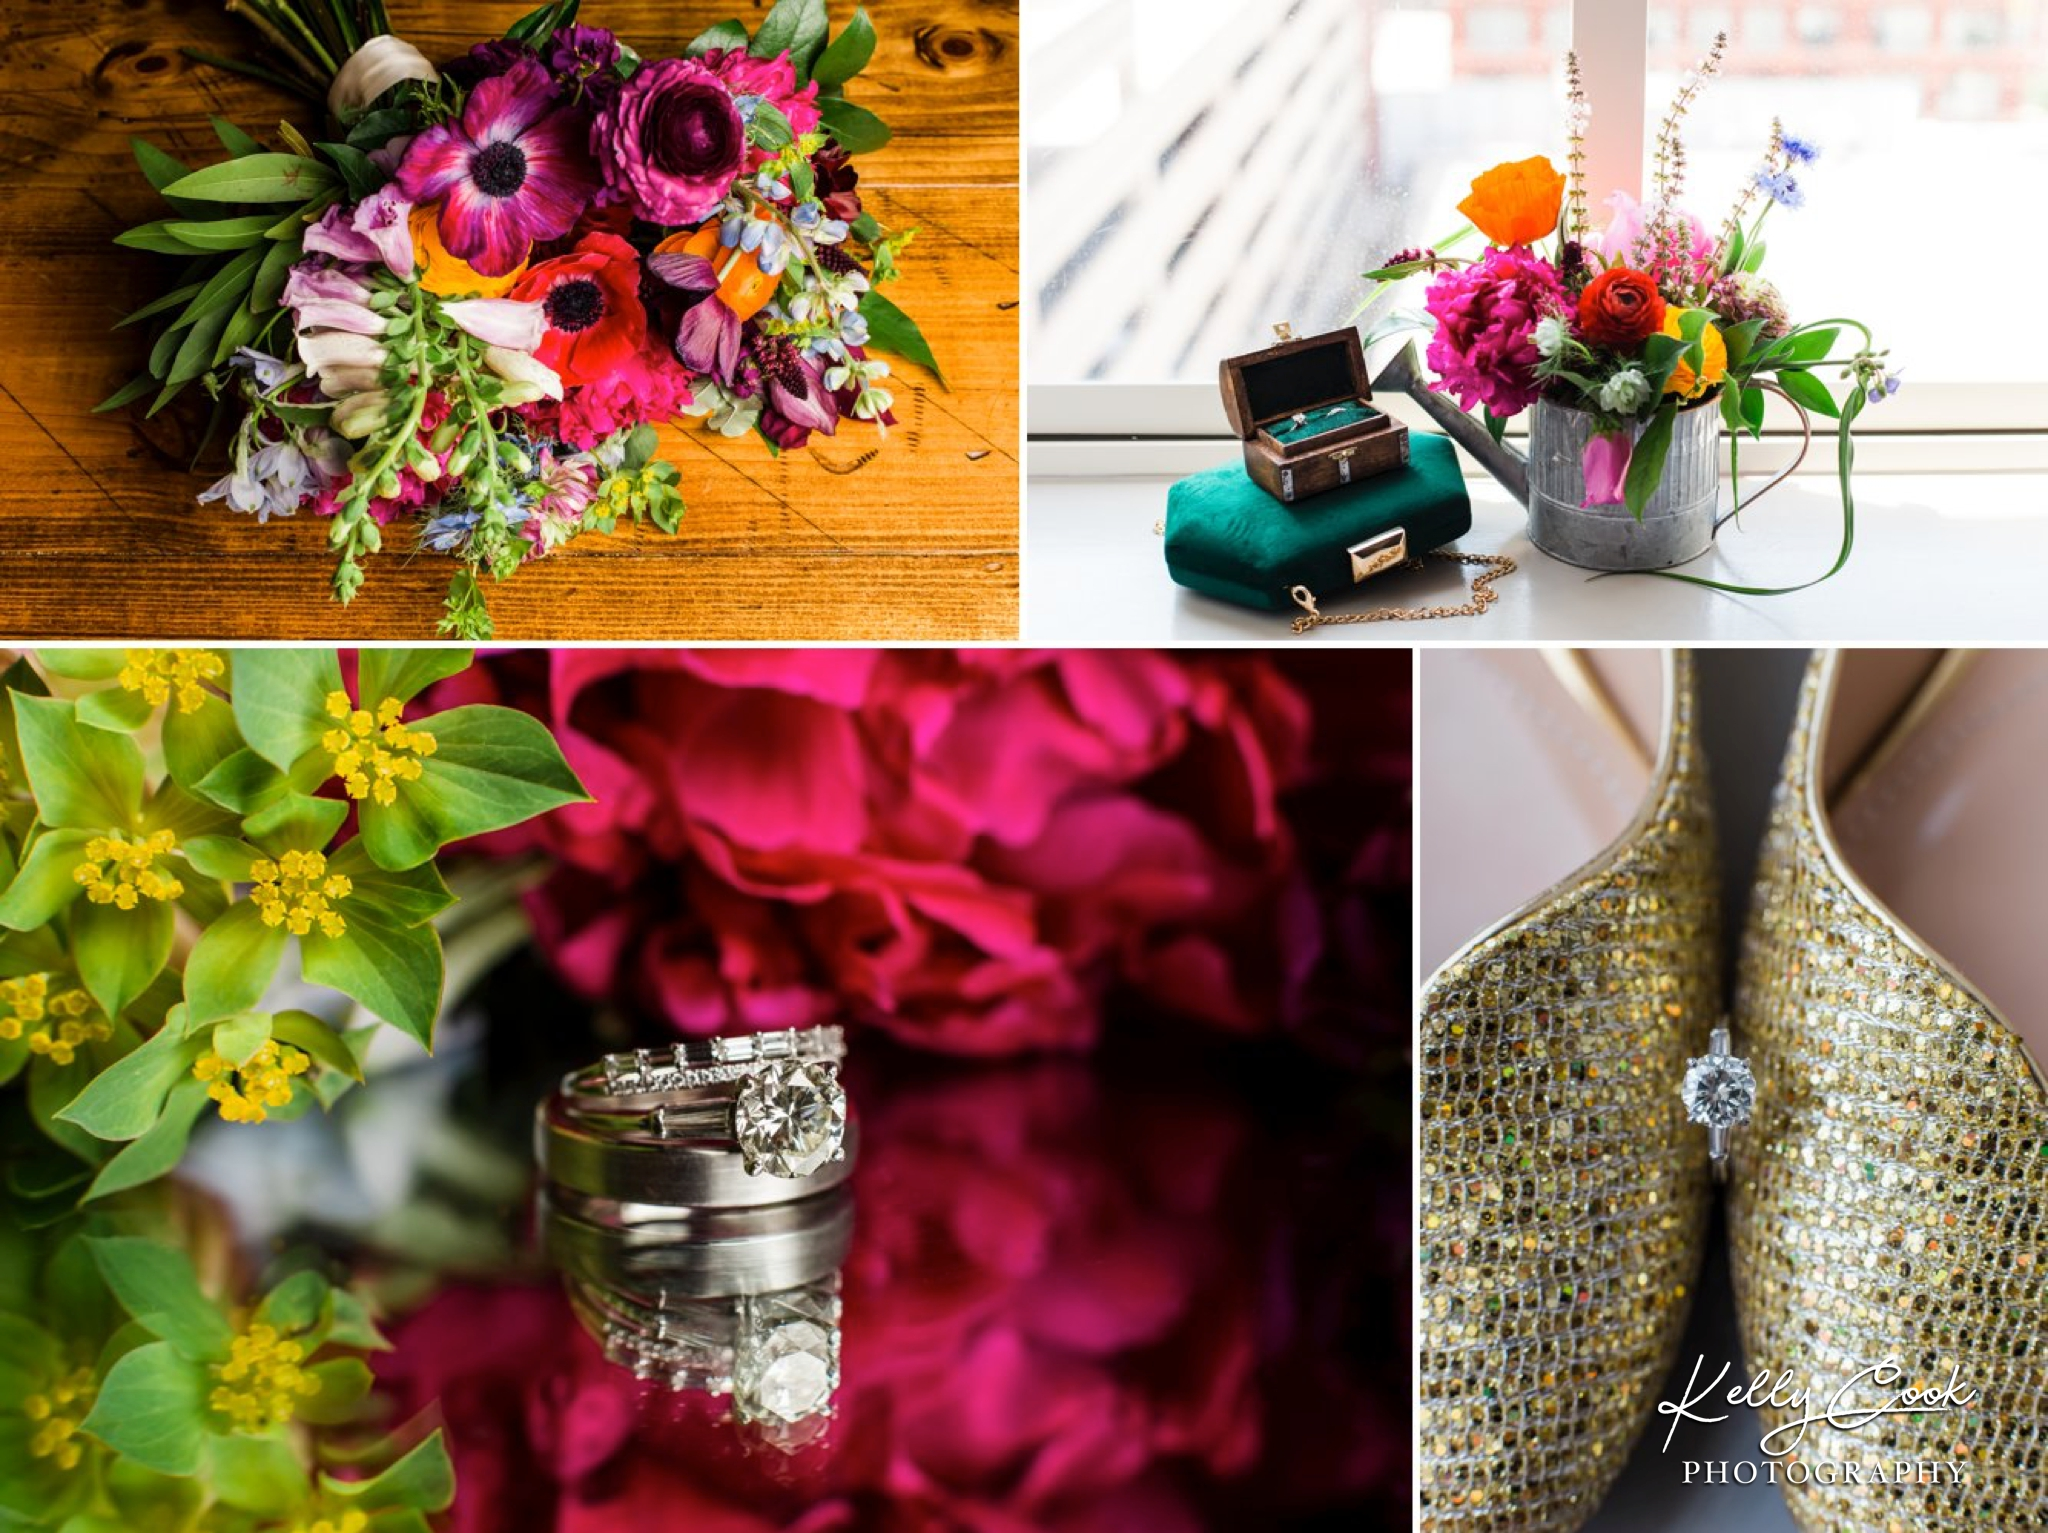 Colorful wedding details and flowers